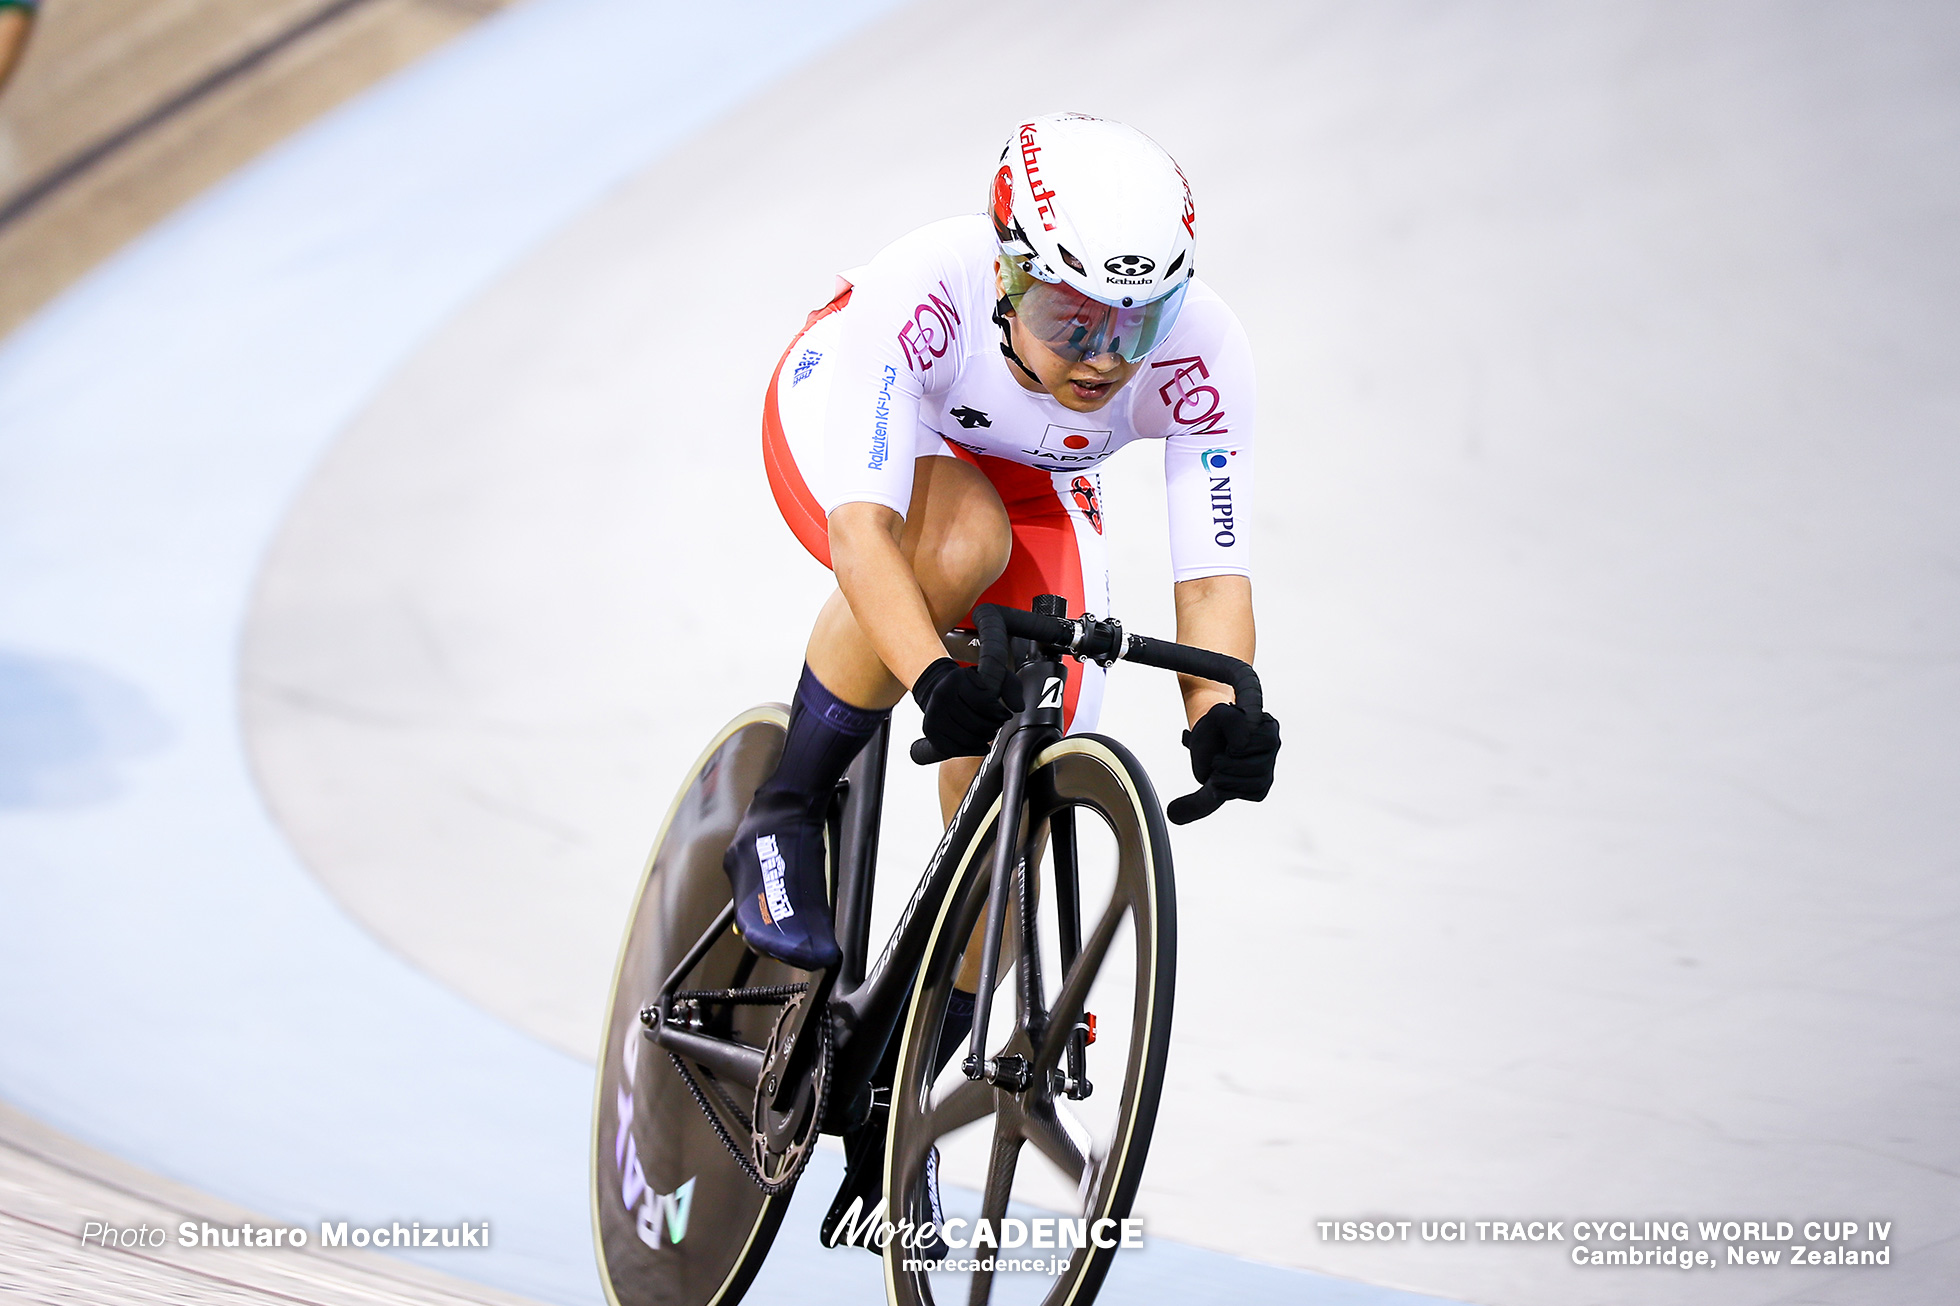 Tempo Race / Women's Omnium / TISSOT UCI TRACK CYCLING WORLD CUP IV, Cambridge, New Zealand